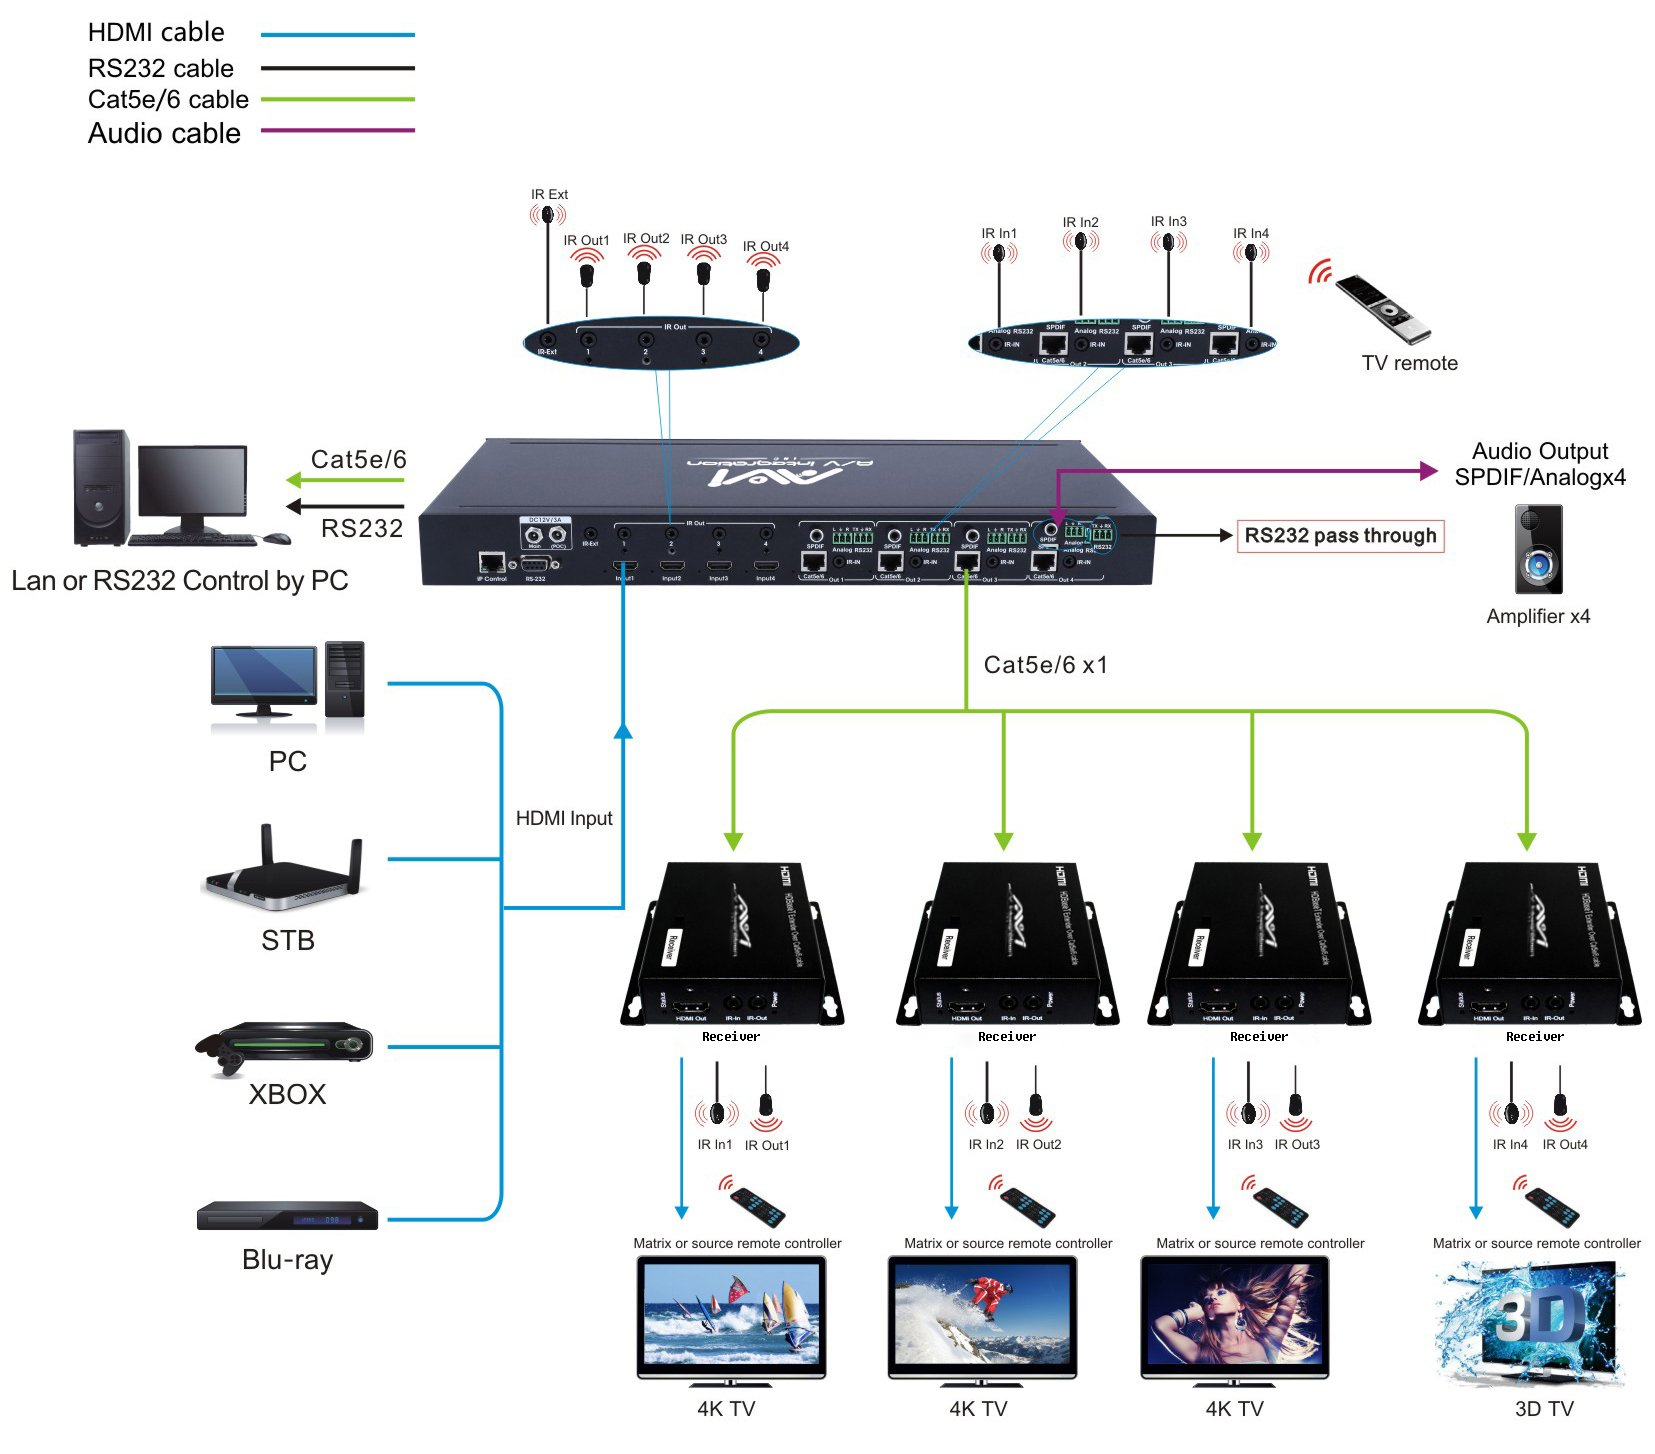 AVI HDBaseT HDMI 2.0 HDCP 2.2 4K 4X4 HDMI Matrix Extender Switcher With 4 POE Receivers Over Single Cat5e/6 Cable Supports Ultra HD 3D 60HZ @ 4Kx2K with Bi-directional IR (Matrix+4receivers) by AVI (Image #2)